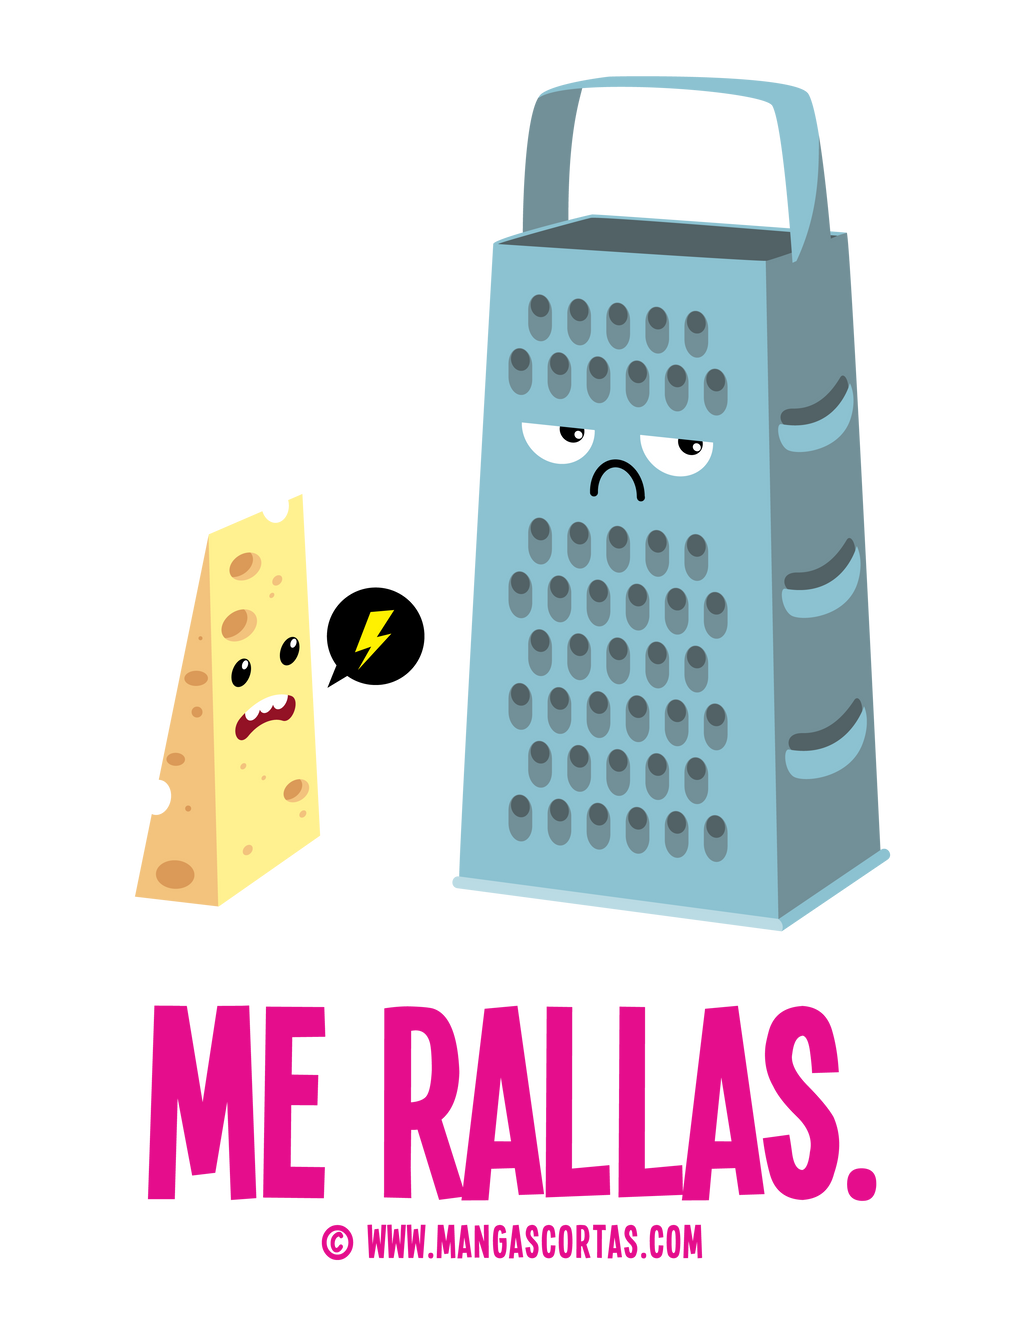 Me rallas by gomitas